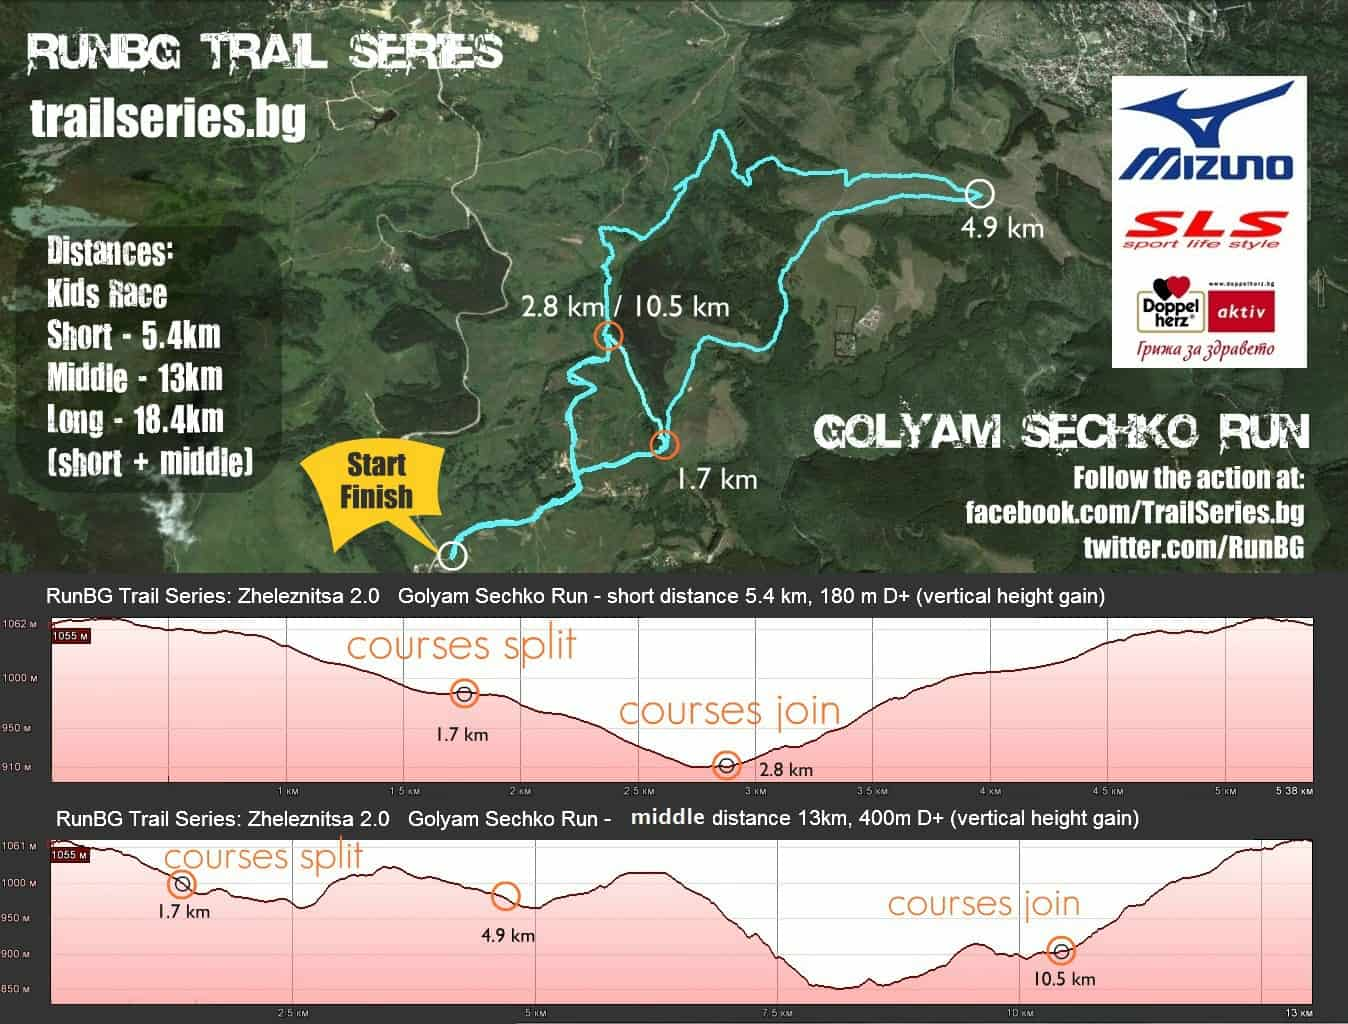 Golyam-Sechko-Run-RunBG-Trail-Series (1)